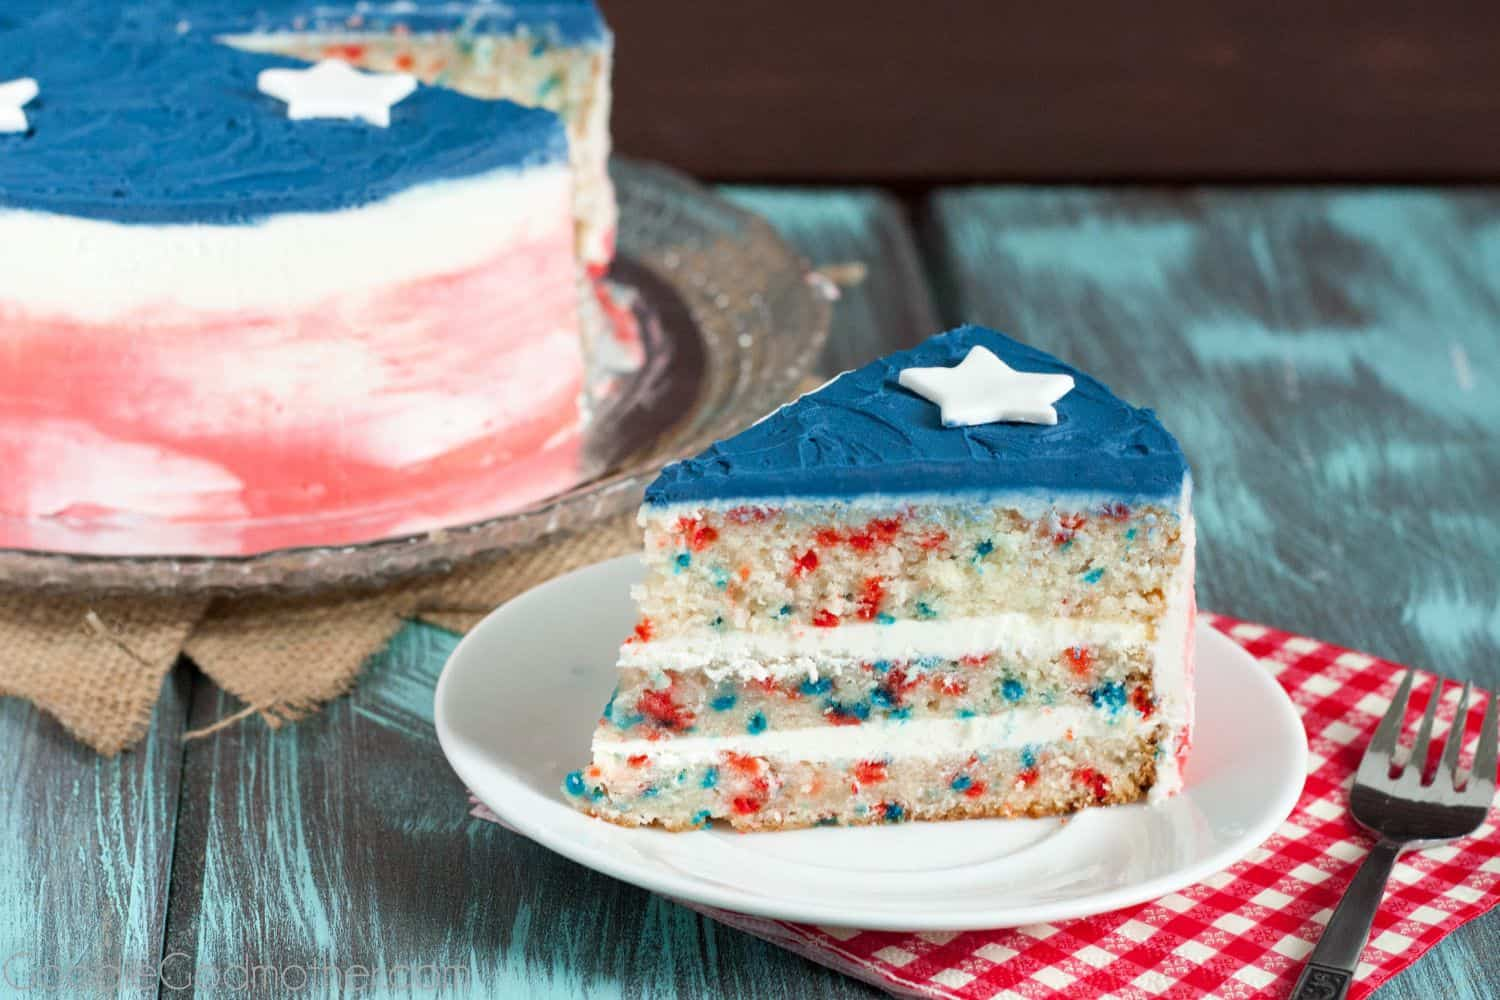 Save this easy, from scratch, patriotic funfetti cake recipe! Includes video link for two easy cake decorating tutorial videos. *Goodie Godmother*